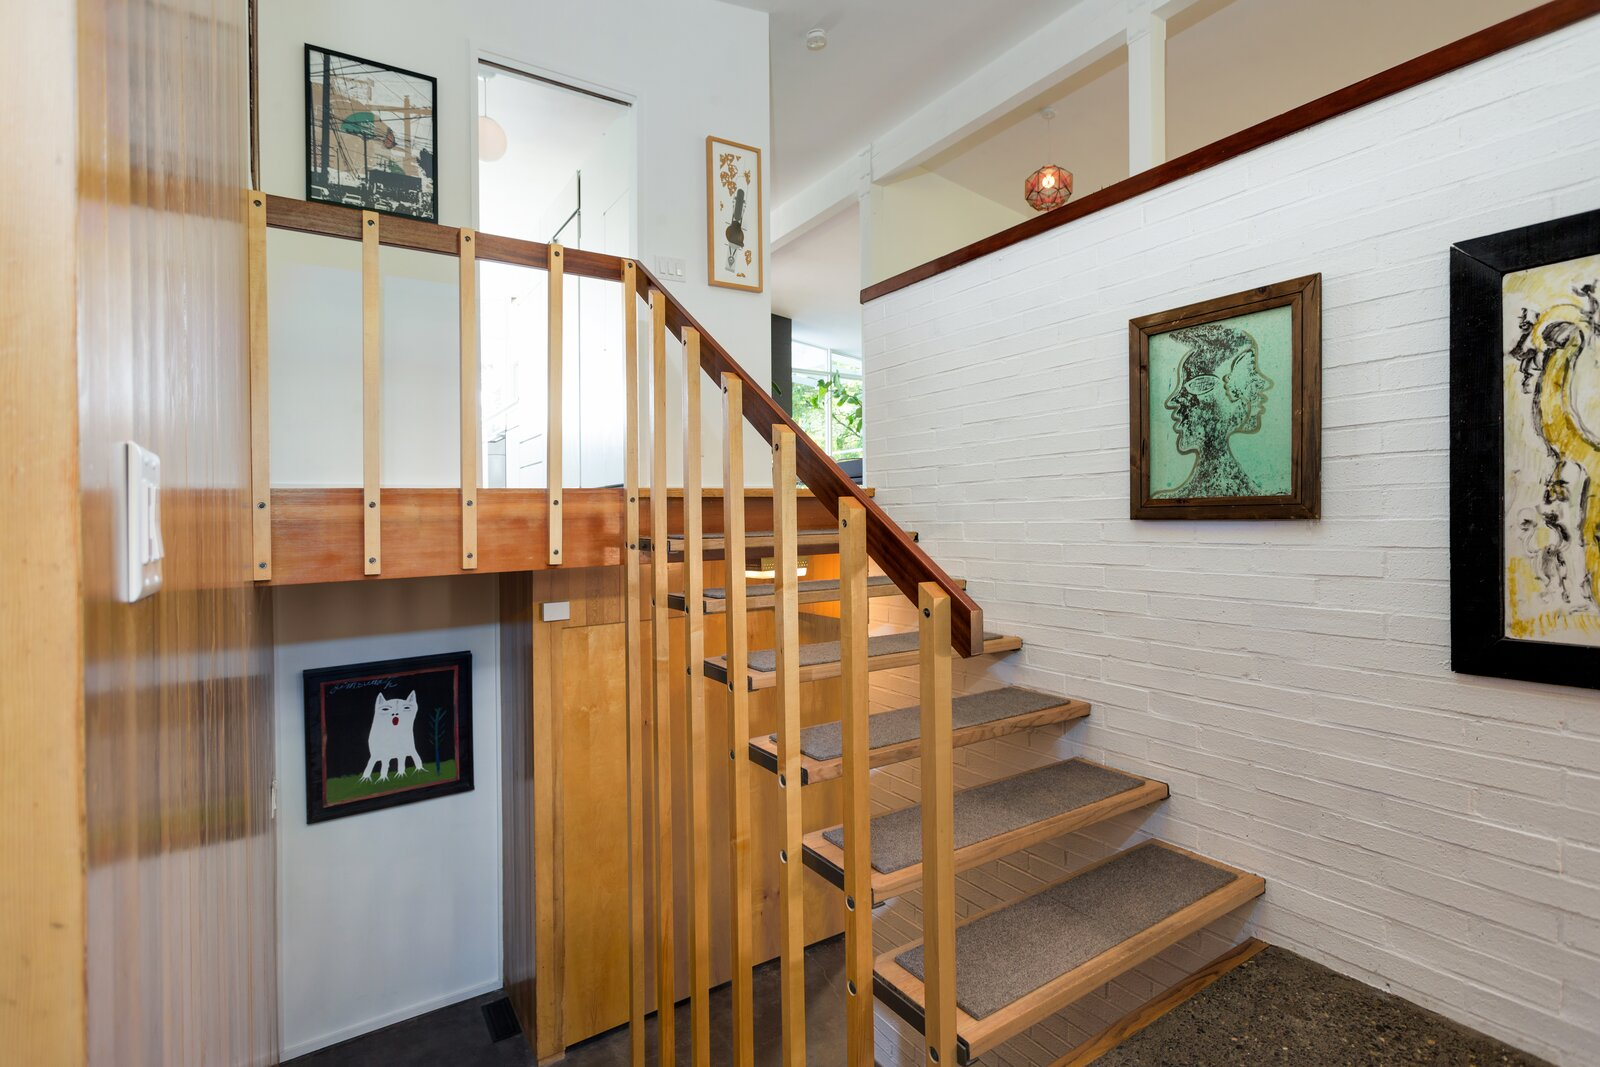 Staircase in Smith-Gerst Residence by Frank Shell